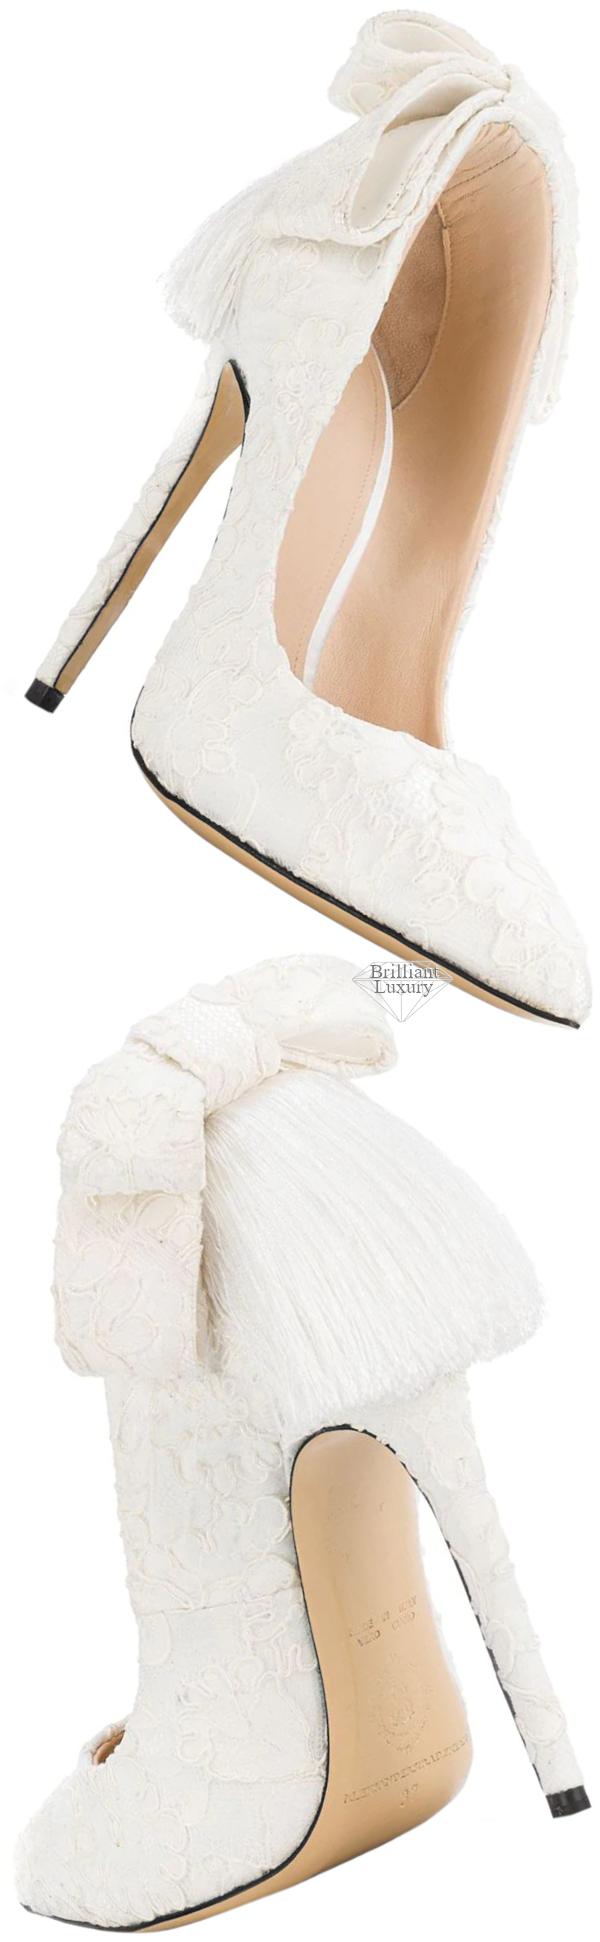 white Izo bow pump #brilliantluxury